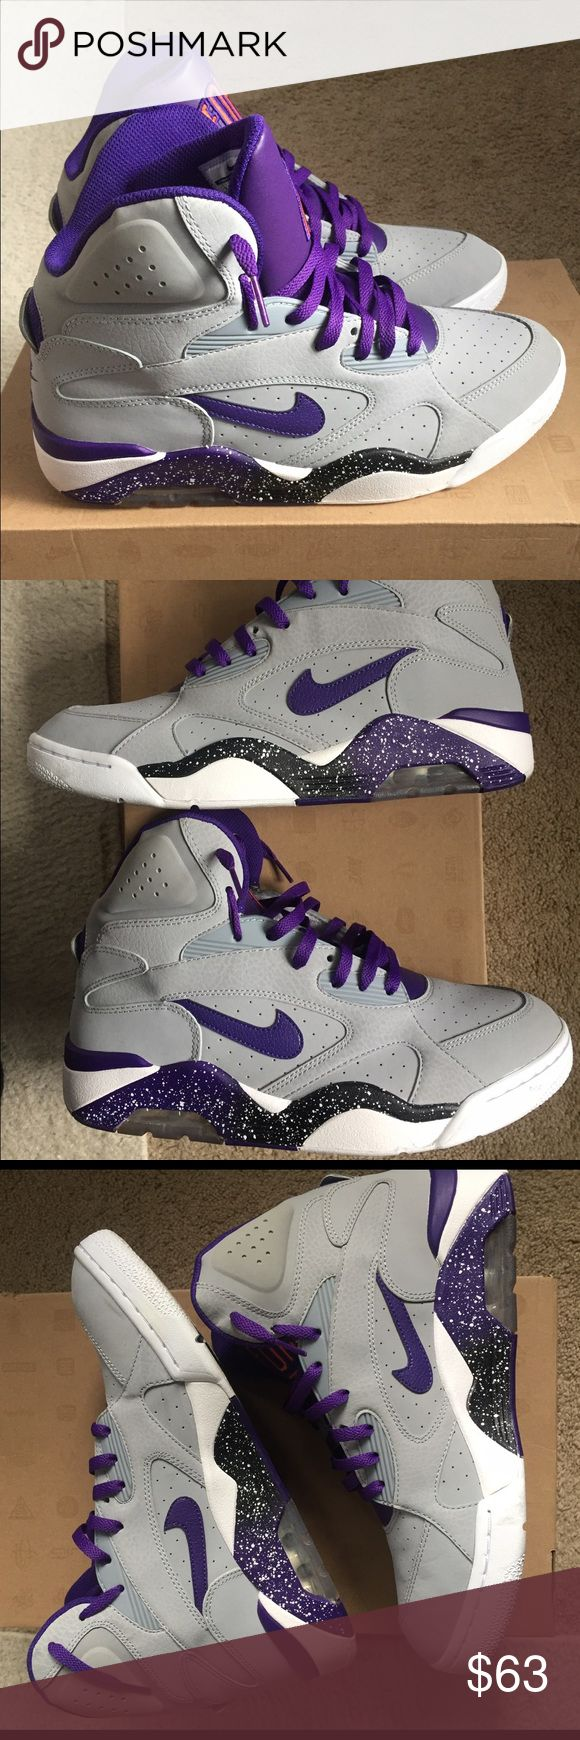 Nike Air Force 180 Mid Grey Nike with purple and white detail- worn only 3 times, like new. No flaws. Size 10.5 men's Nike Shoes Sneakers